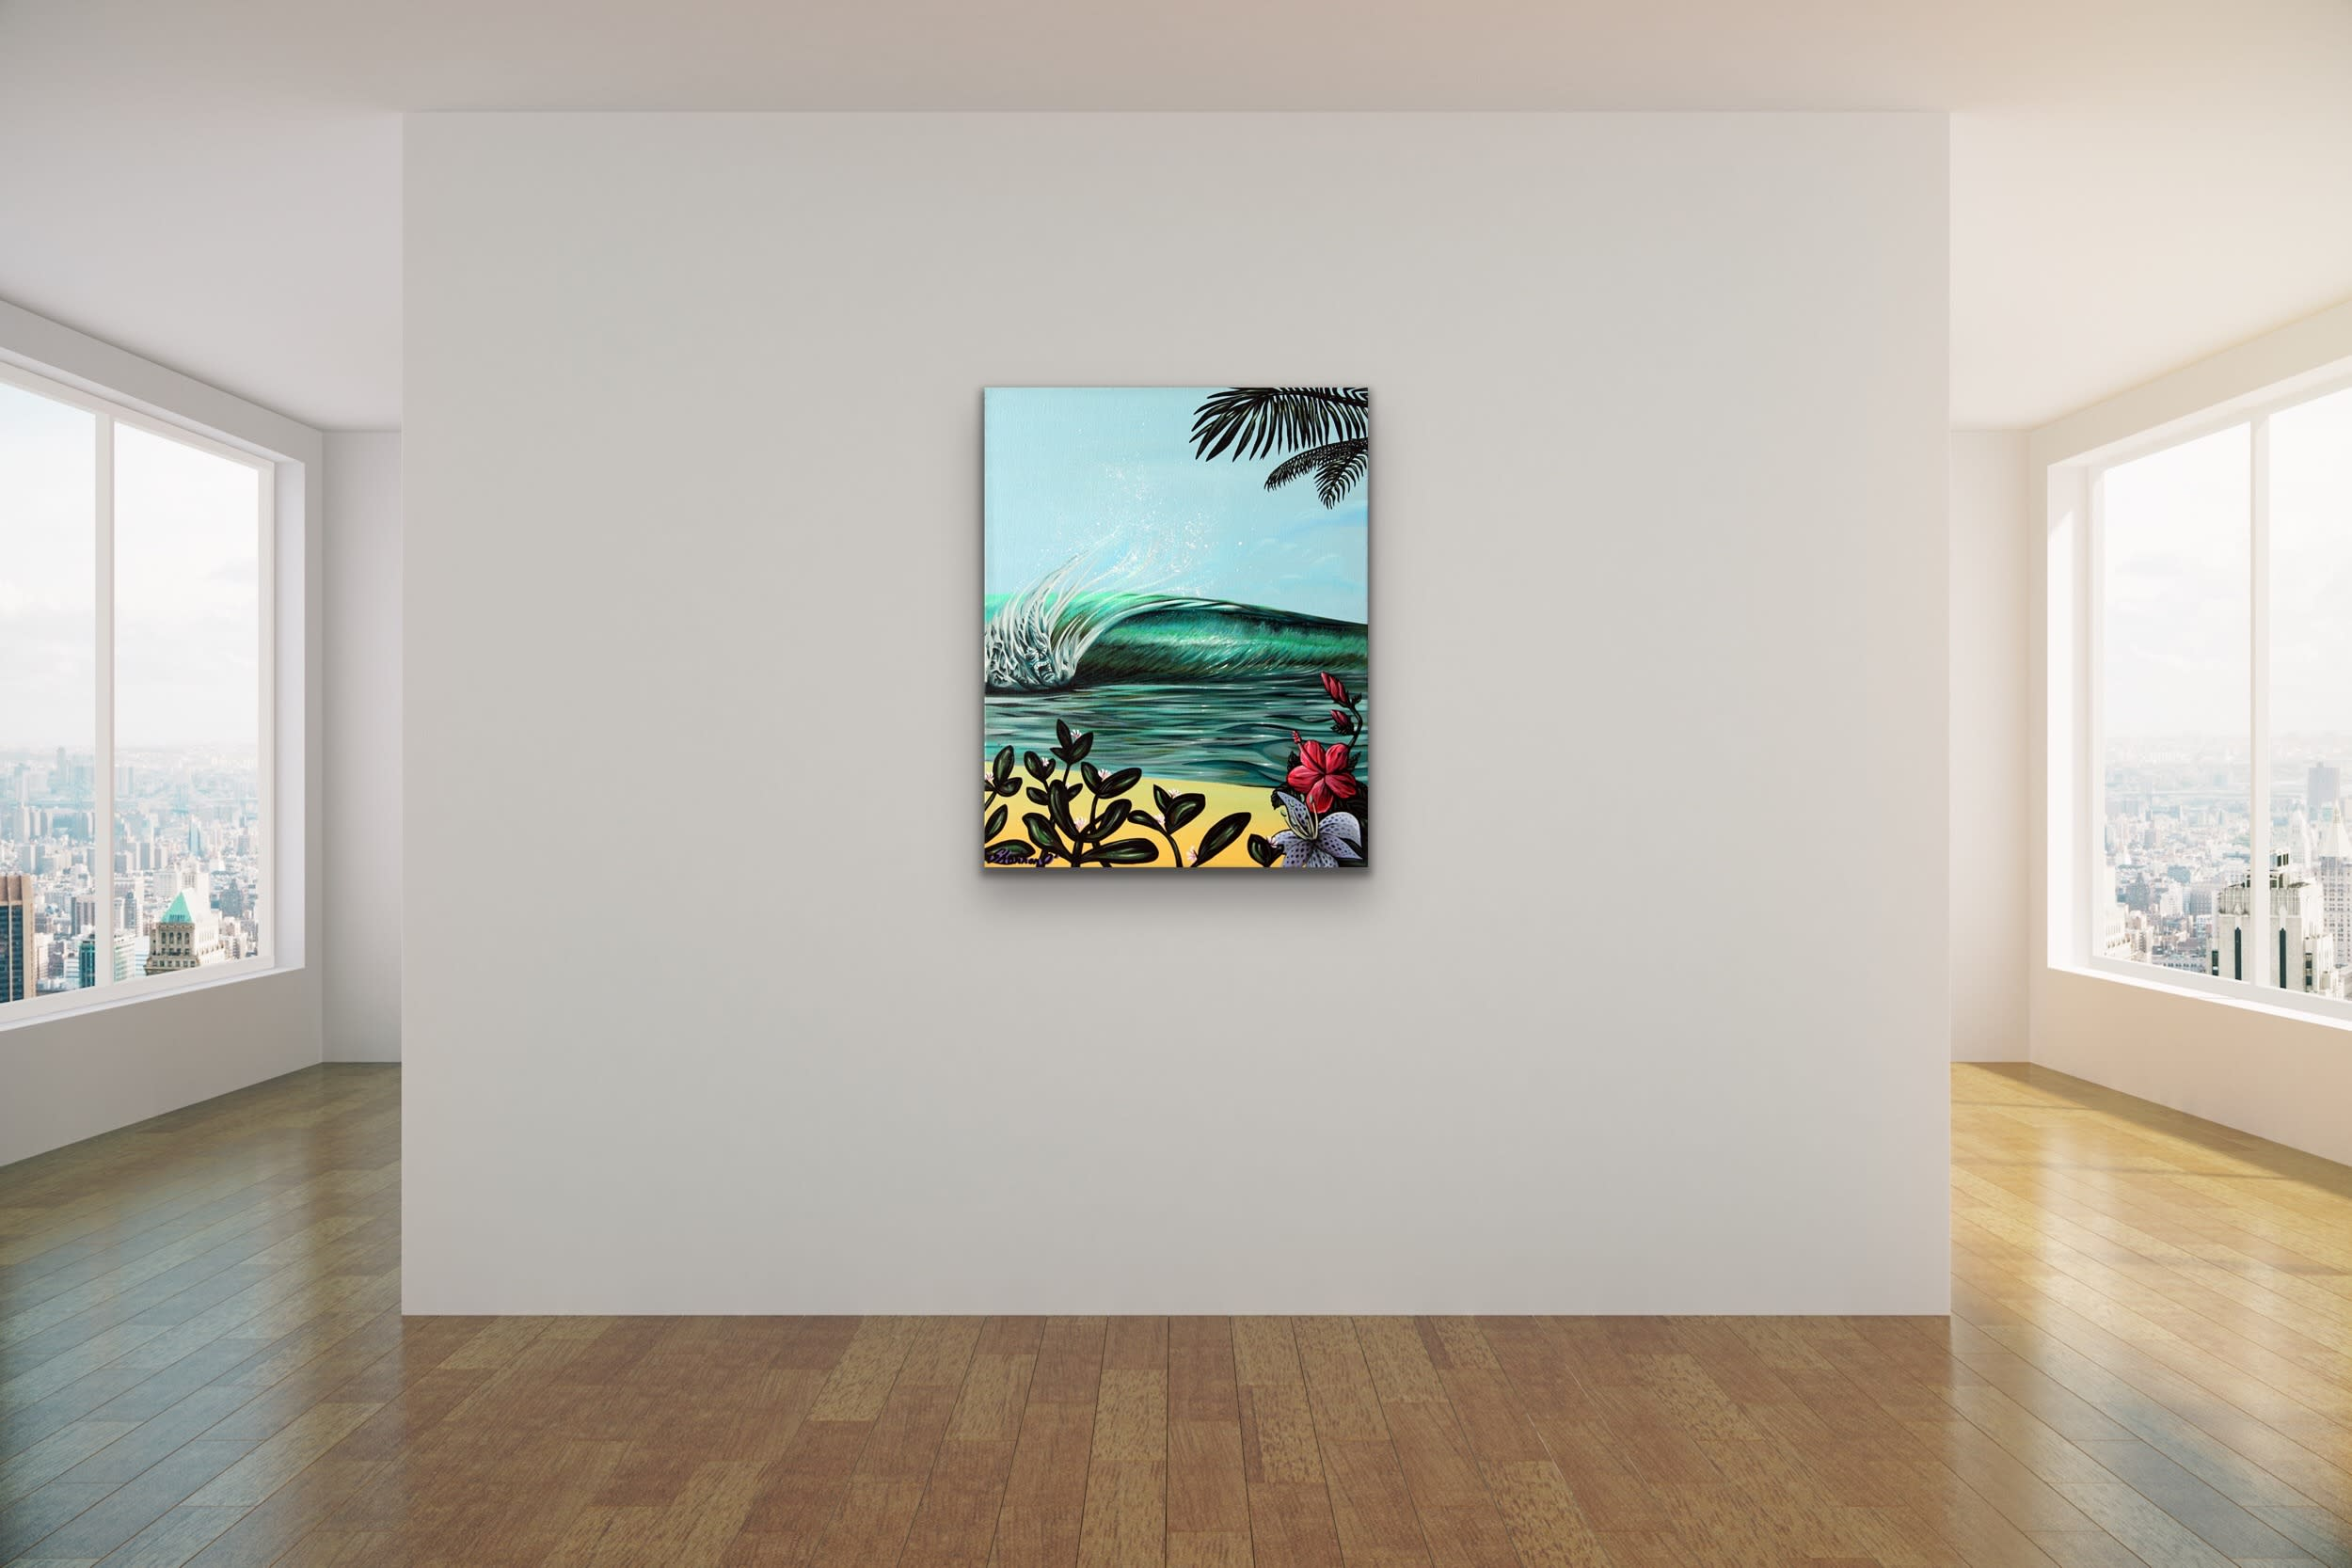 <div class='title'>           Shannon Oconnell Paintings Mock Ups Evo Art Maui Lahain Front Street Gallery Collect Popular Colorful Ocean Flowers Scenery Waves 14         </div>